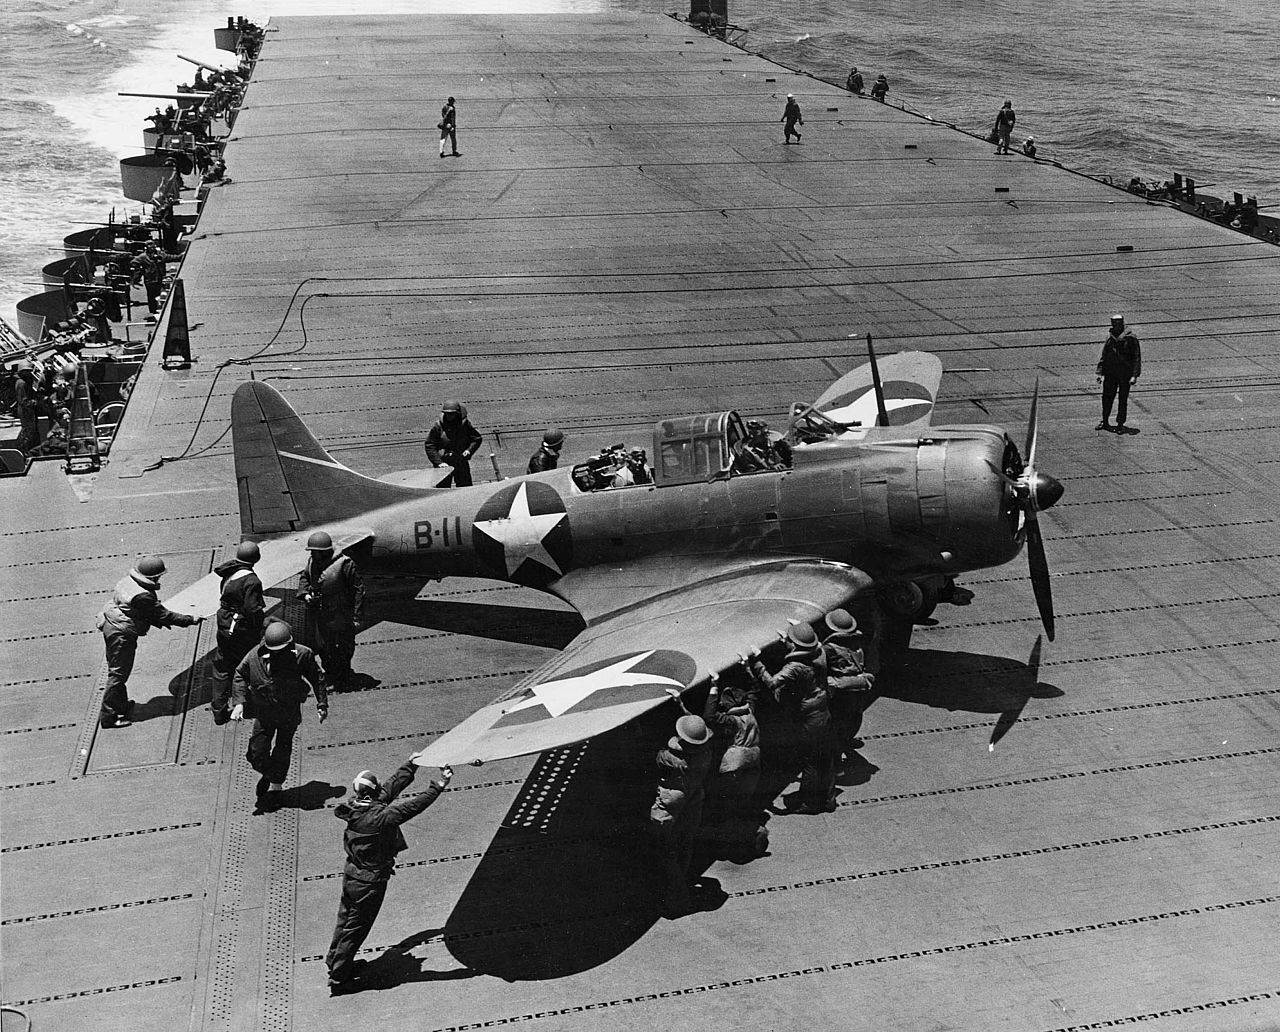 1280px-SBD_8-B-11_on_USS_Hornet_Midway.j